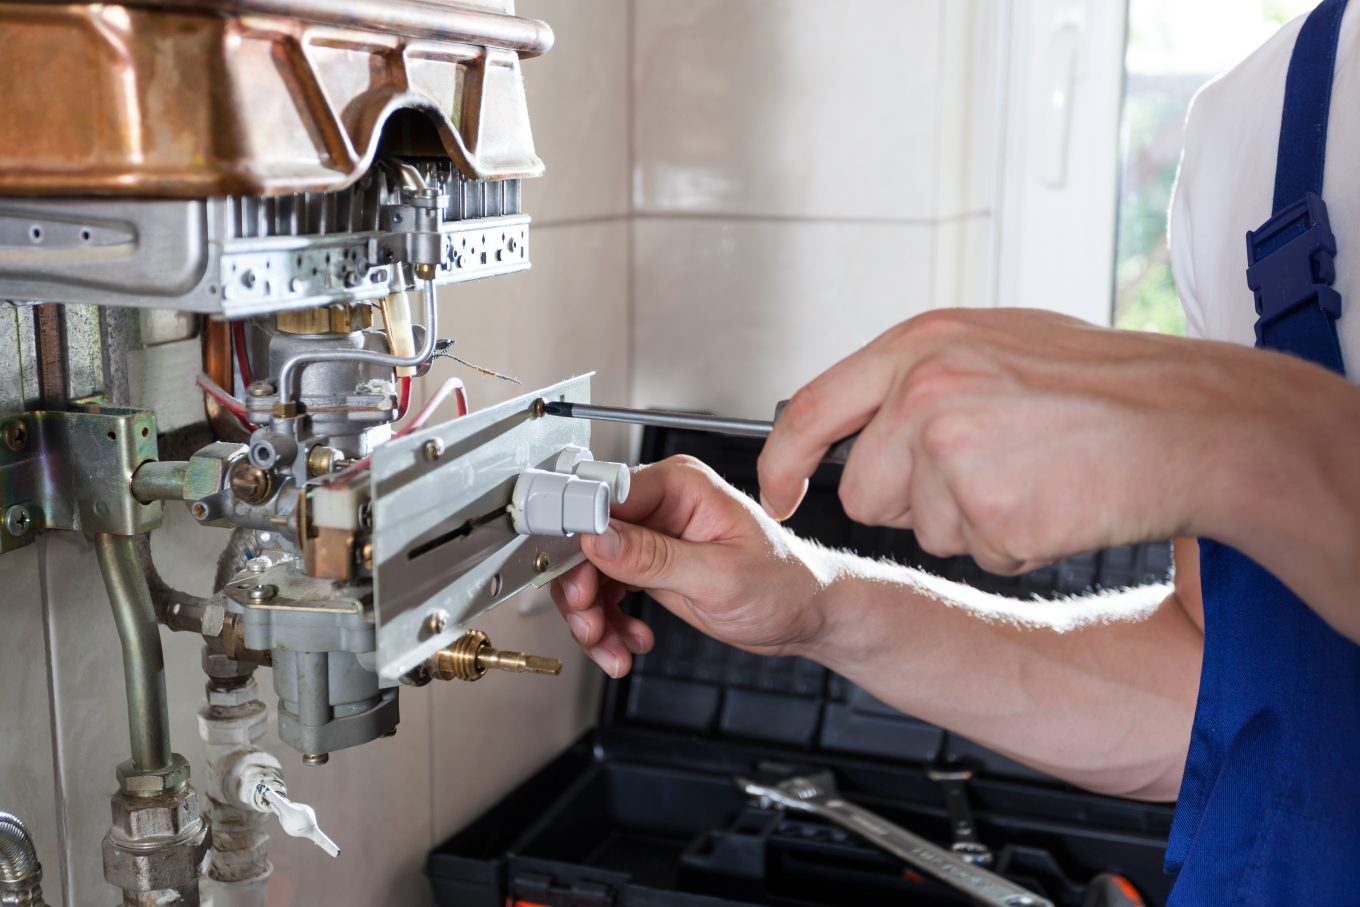 Repairman fixing a gas water heater with a screwdriver